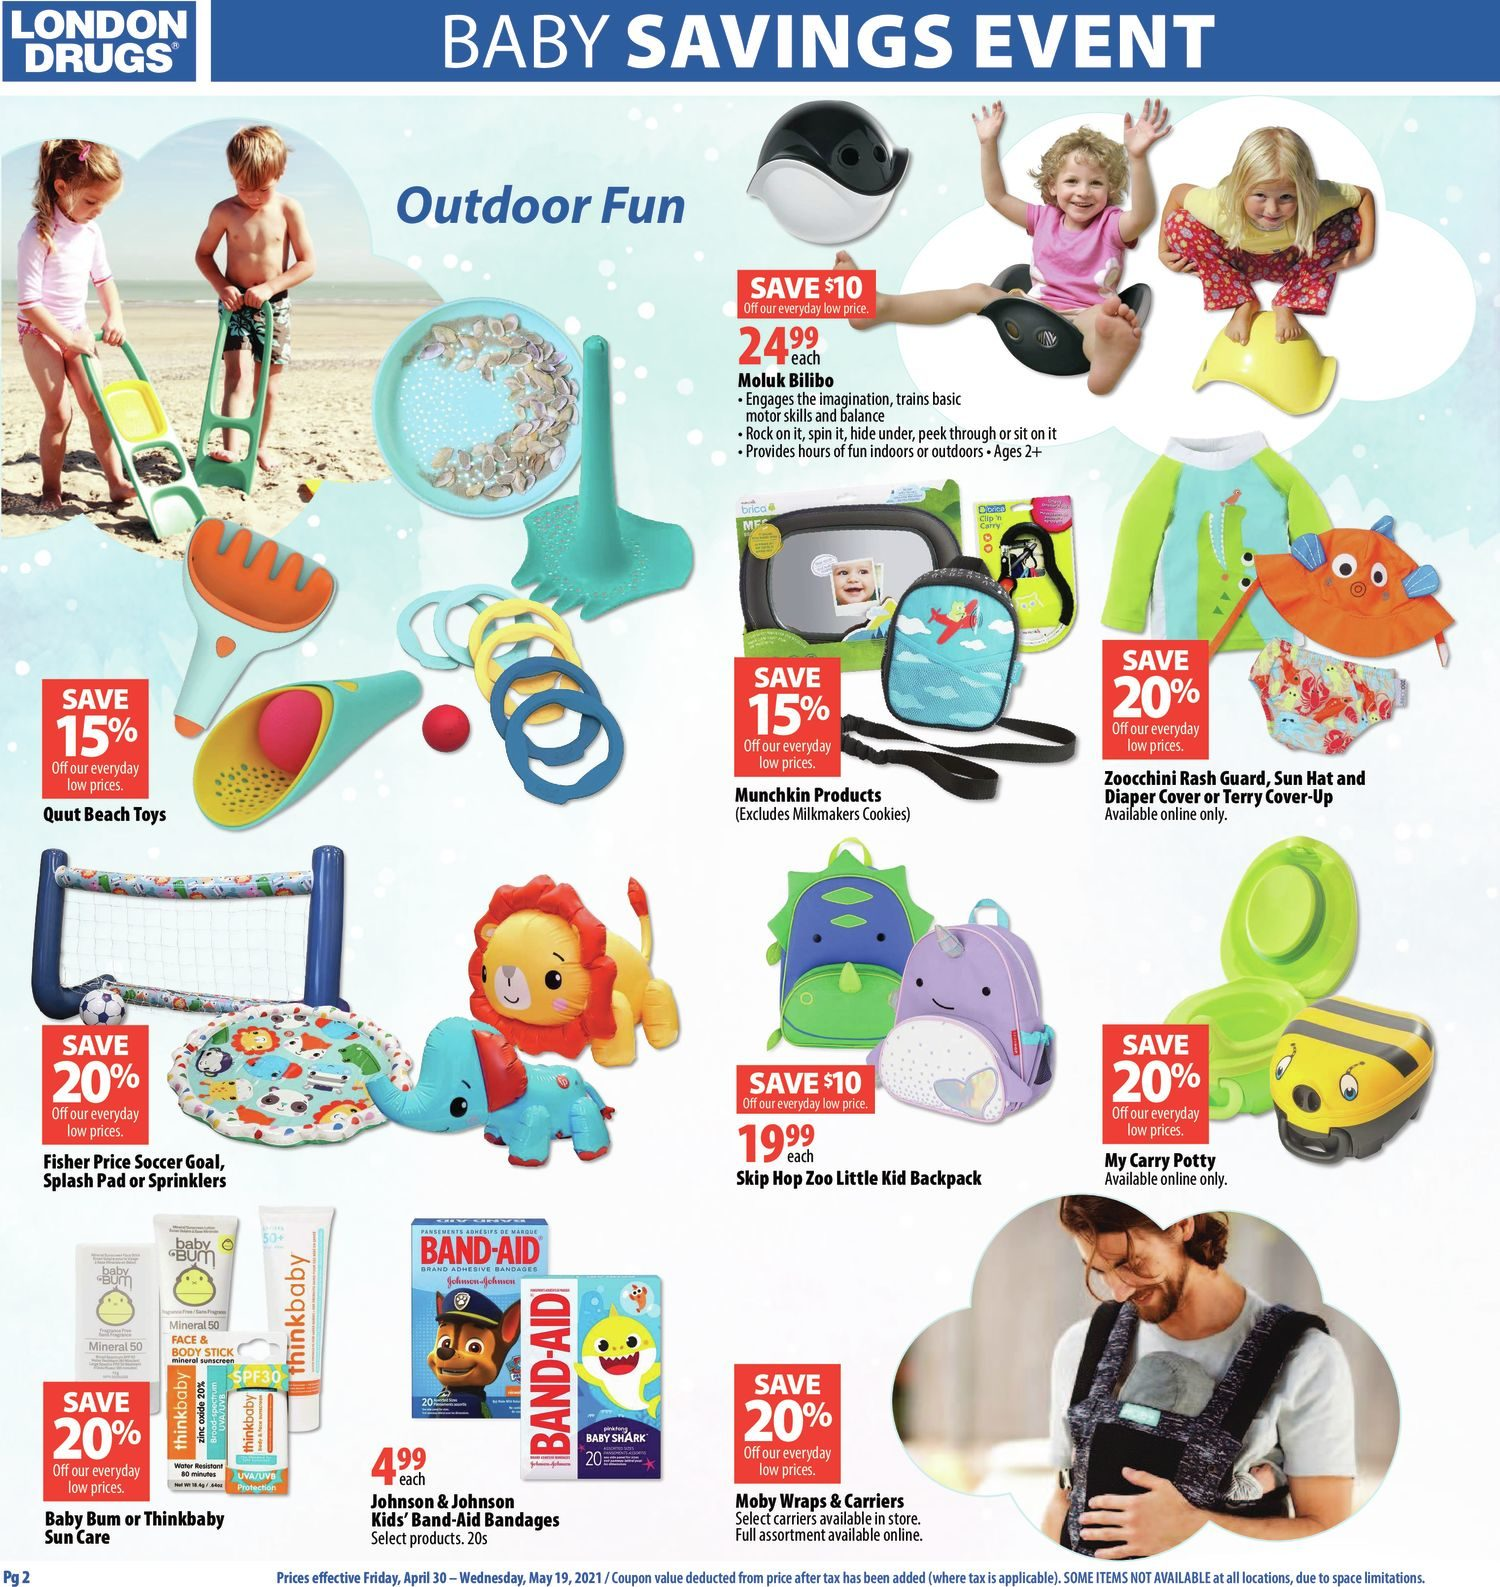 London Drugs - Baby Savings Event - Page 2